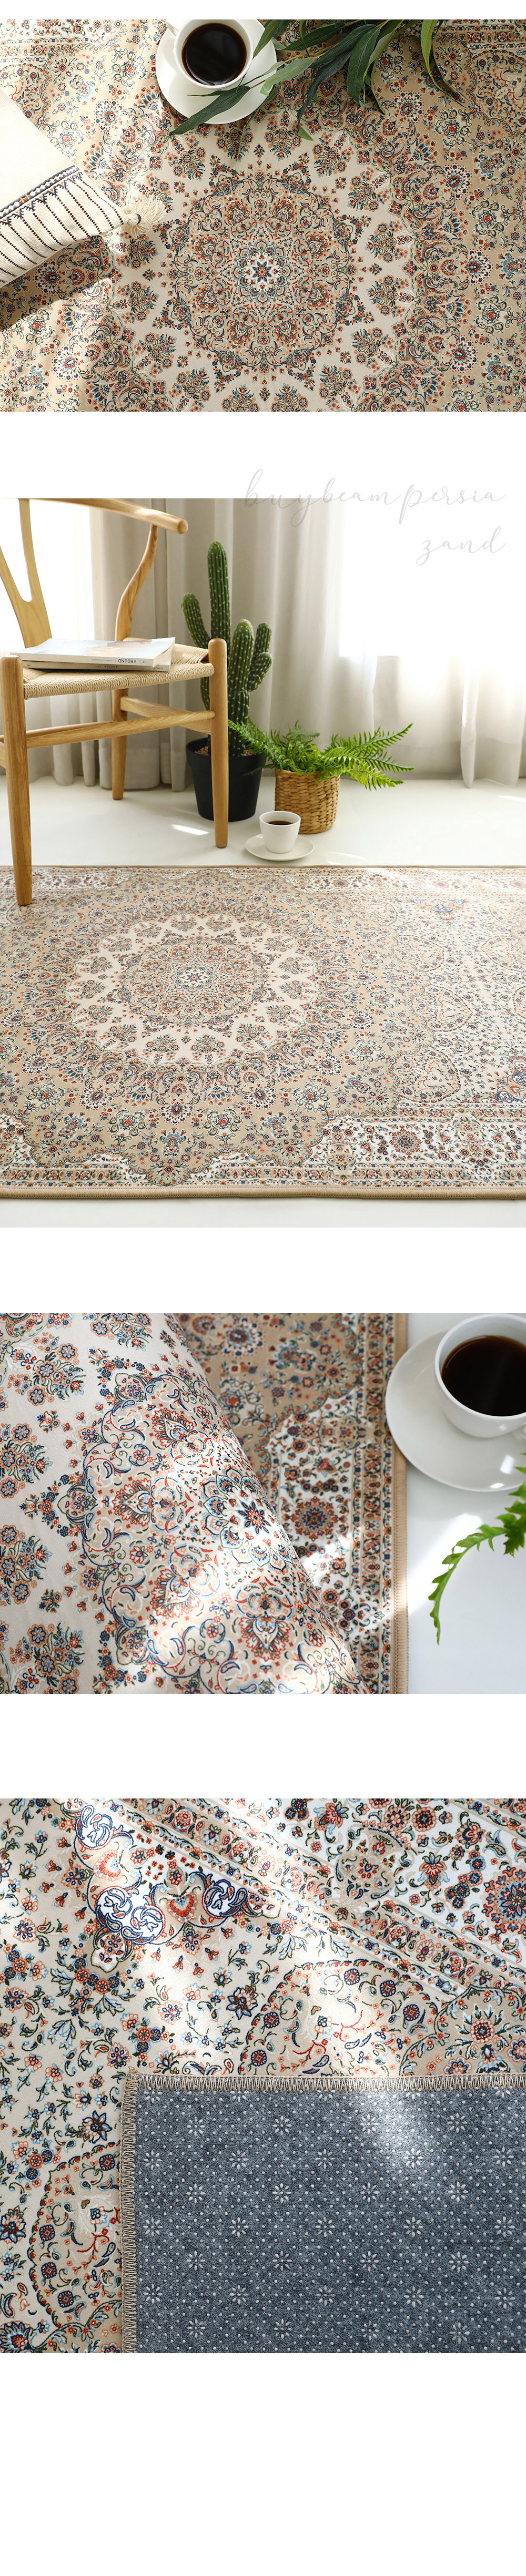 buybeam persian carpet runner Zand